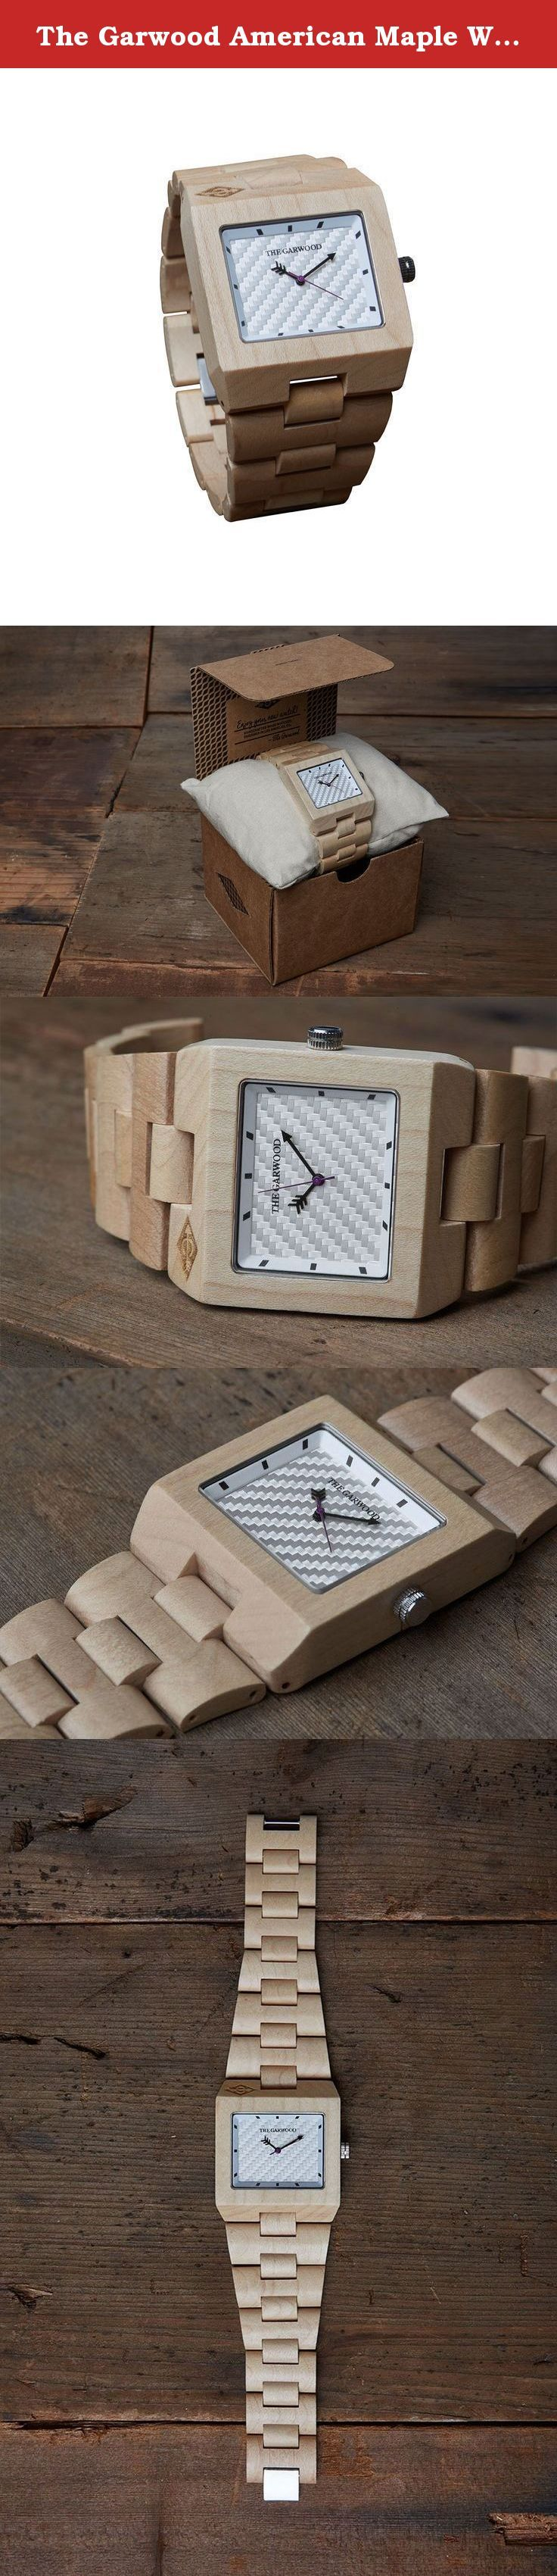 "The Garwood American Maple Wood Watch - ""Angeleno"" - Square - Analog - 12-Month Warranty. We created the ""Angeleno"" to pay tribute to Los Angeles, the city where The Garwood lives and where the watches are designed. We wanted to make it bright and light to reflect the always sunny, City of Angels. With its light American maple wood and white copper face, the ""Angeleno"" is sure to shine wherever you go."